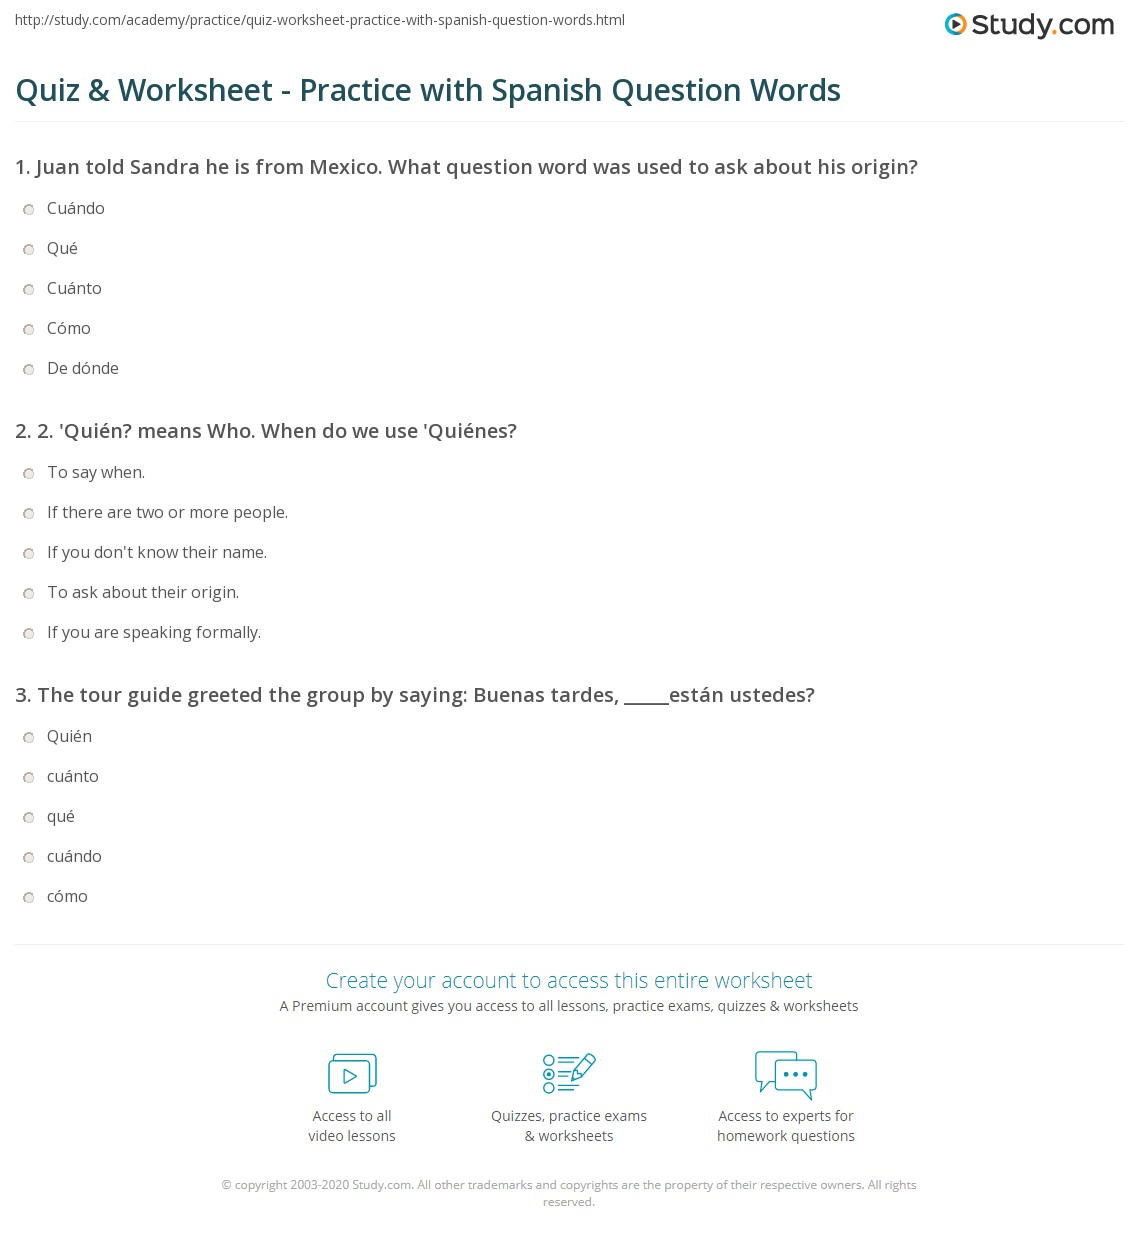 Quiz & Worksheet - Practice with Spanish Question Words | Study.com